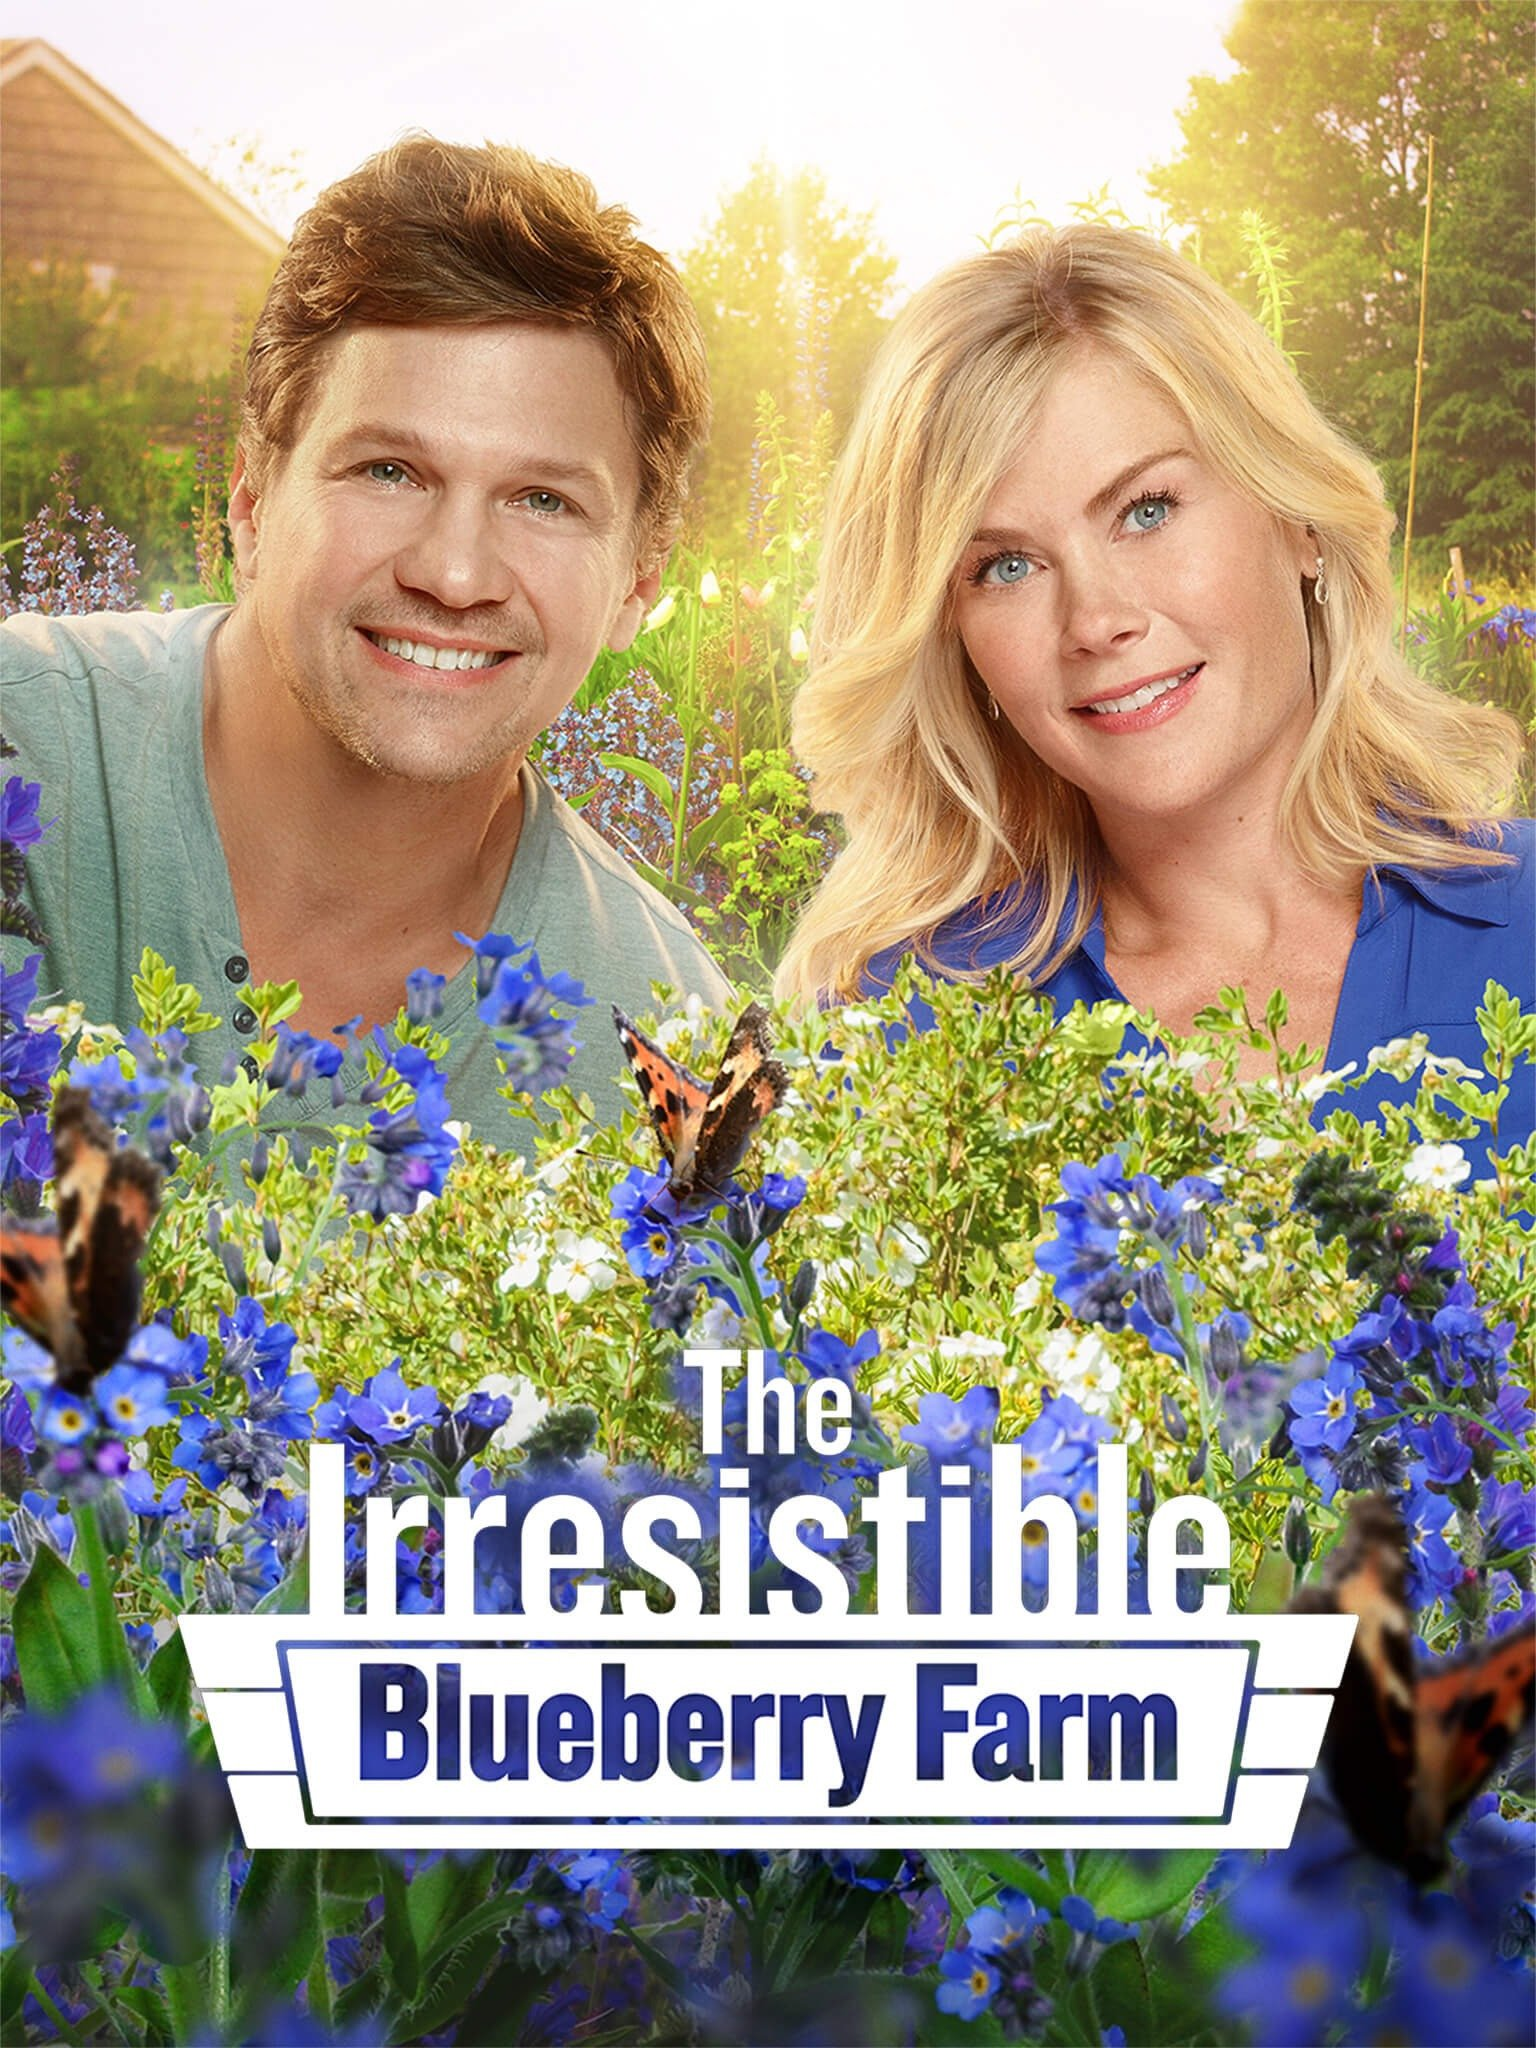 The Irresistible Blueberry Farm (TV Movie 2016) - IMDb